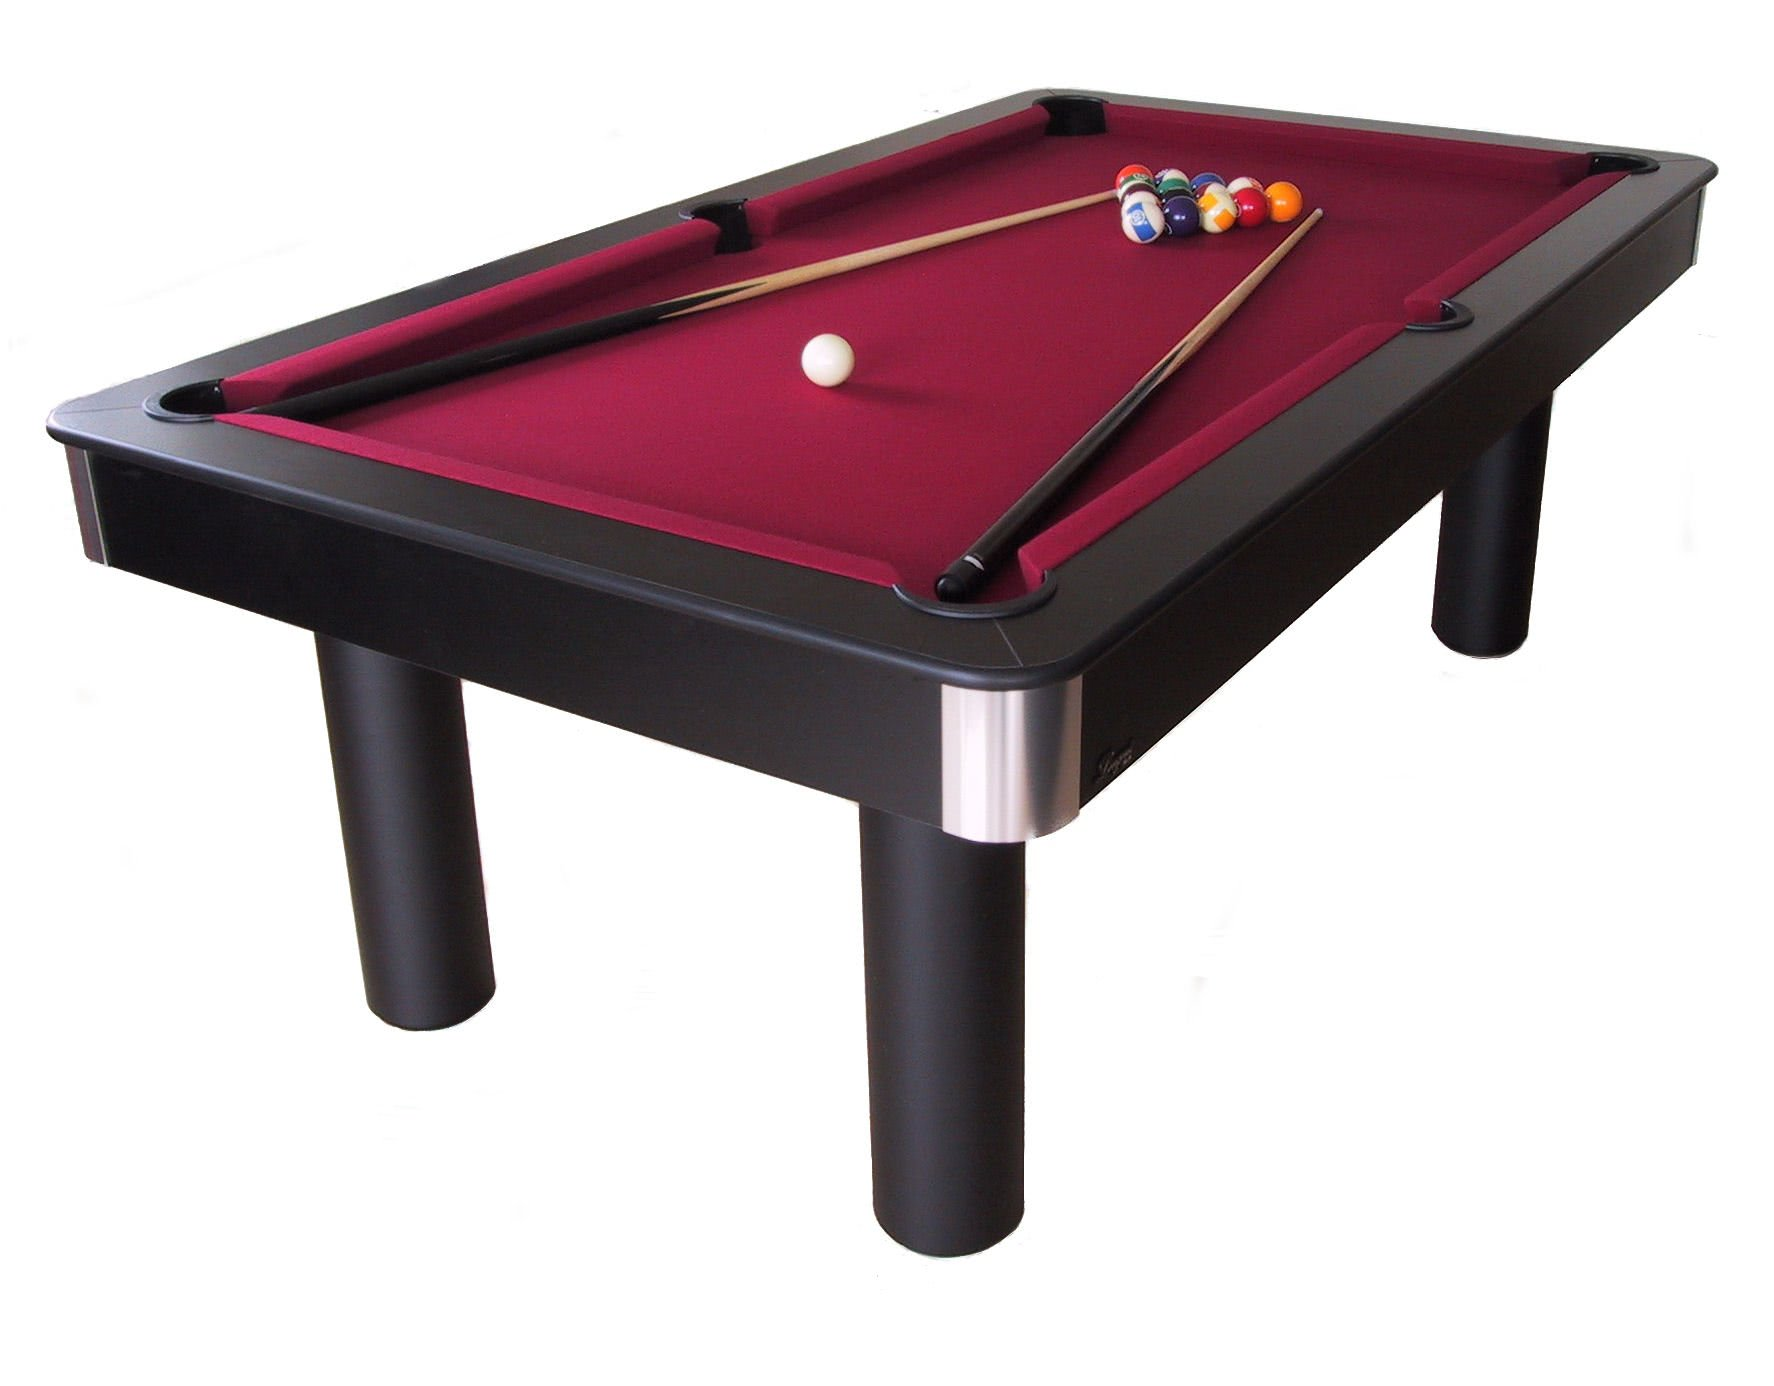 Longoni Red Devil Pool Table 7 ft 8 ft Liberty Games : 1640 longoni red devil seven from www.libertygames.co.uk size 1774 x 1386 jpeg 116kB